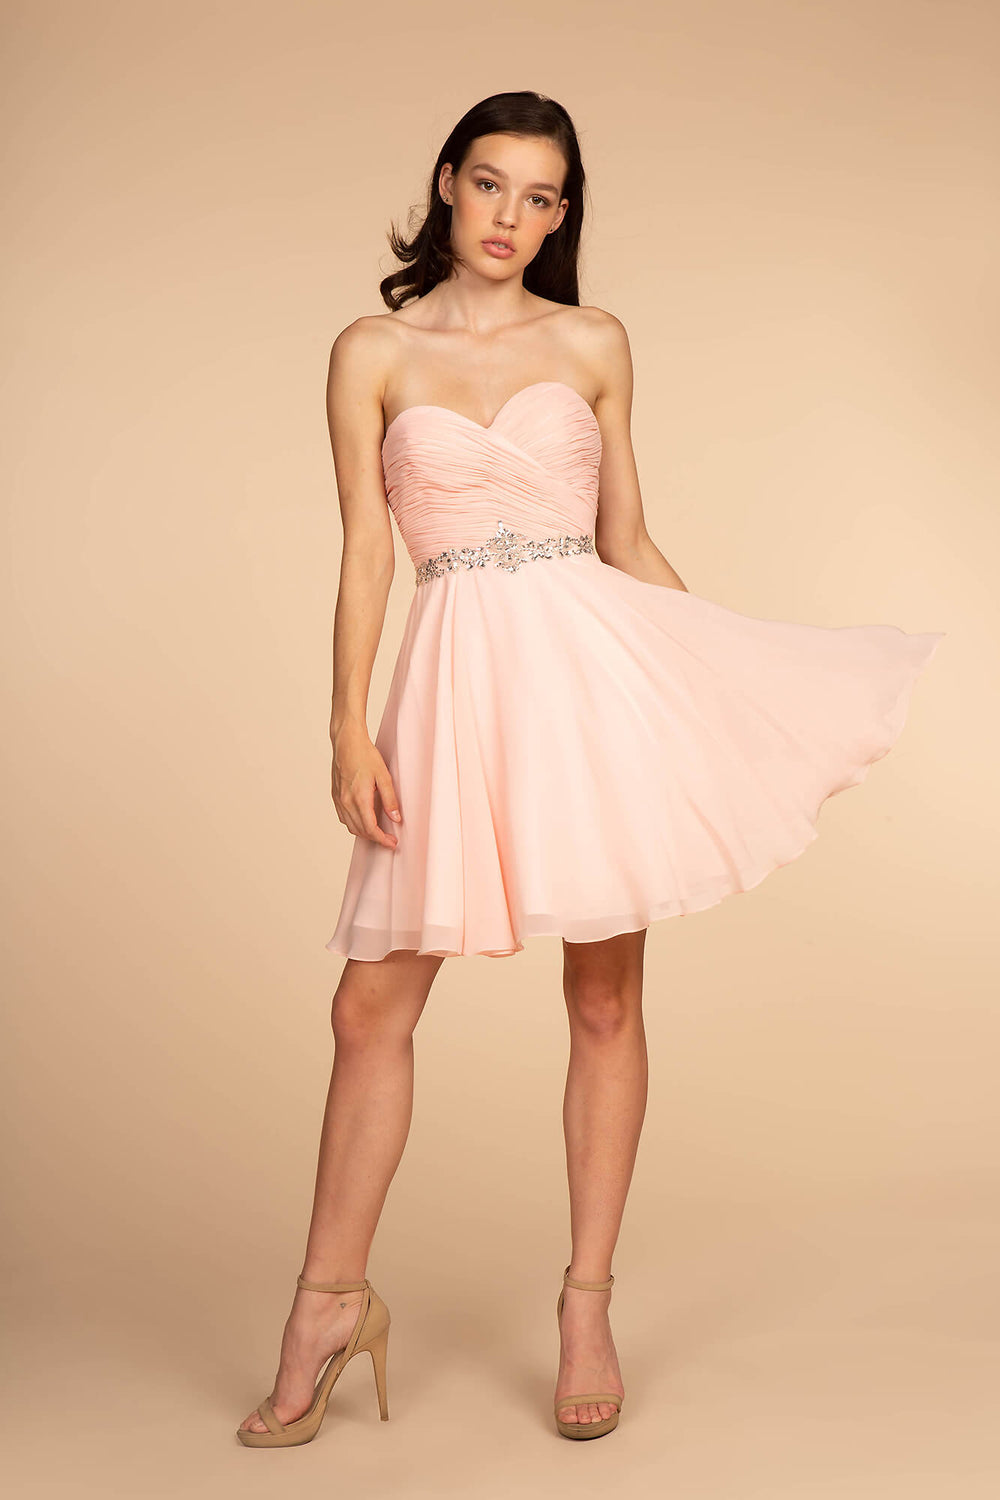 Strapless Short Cocktail Dress Formal - The Dress Outlet Blush